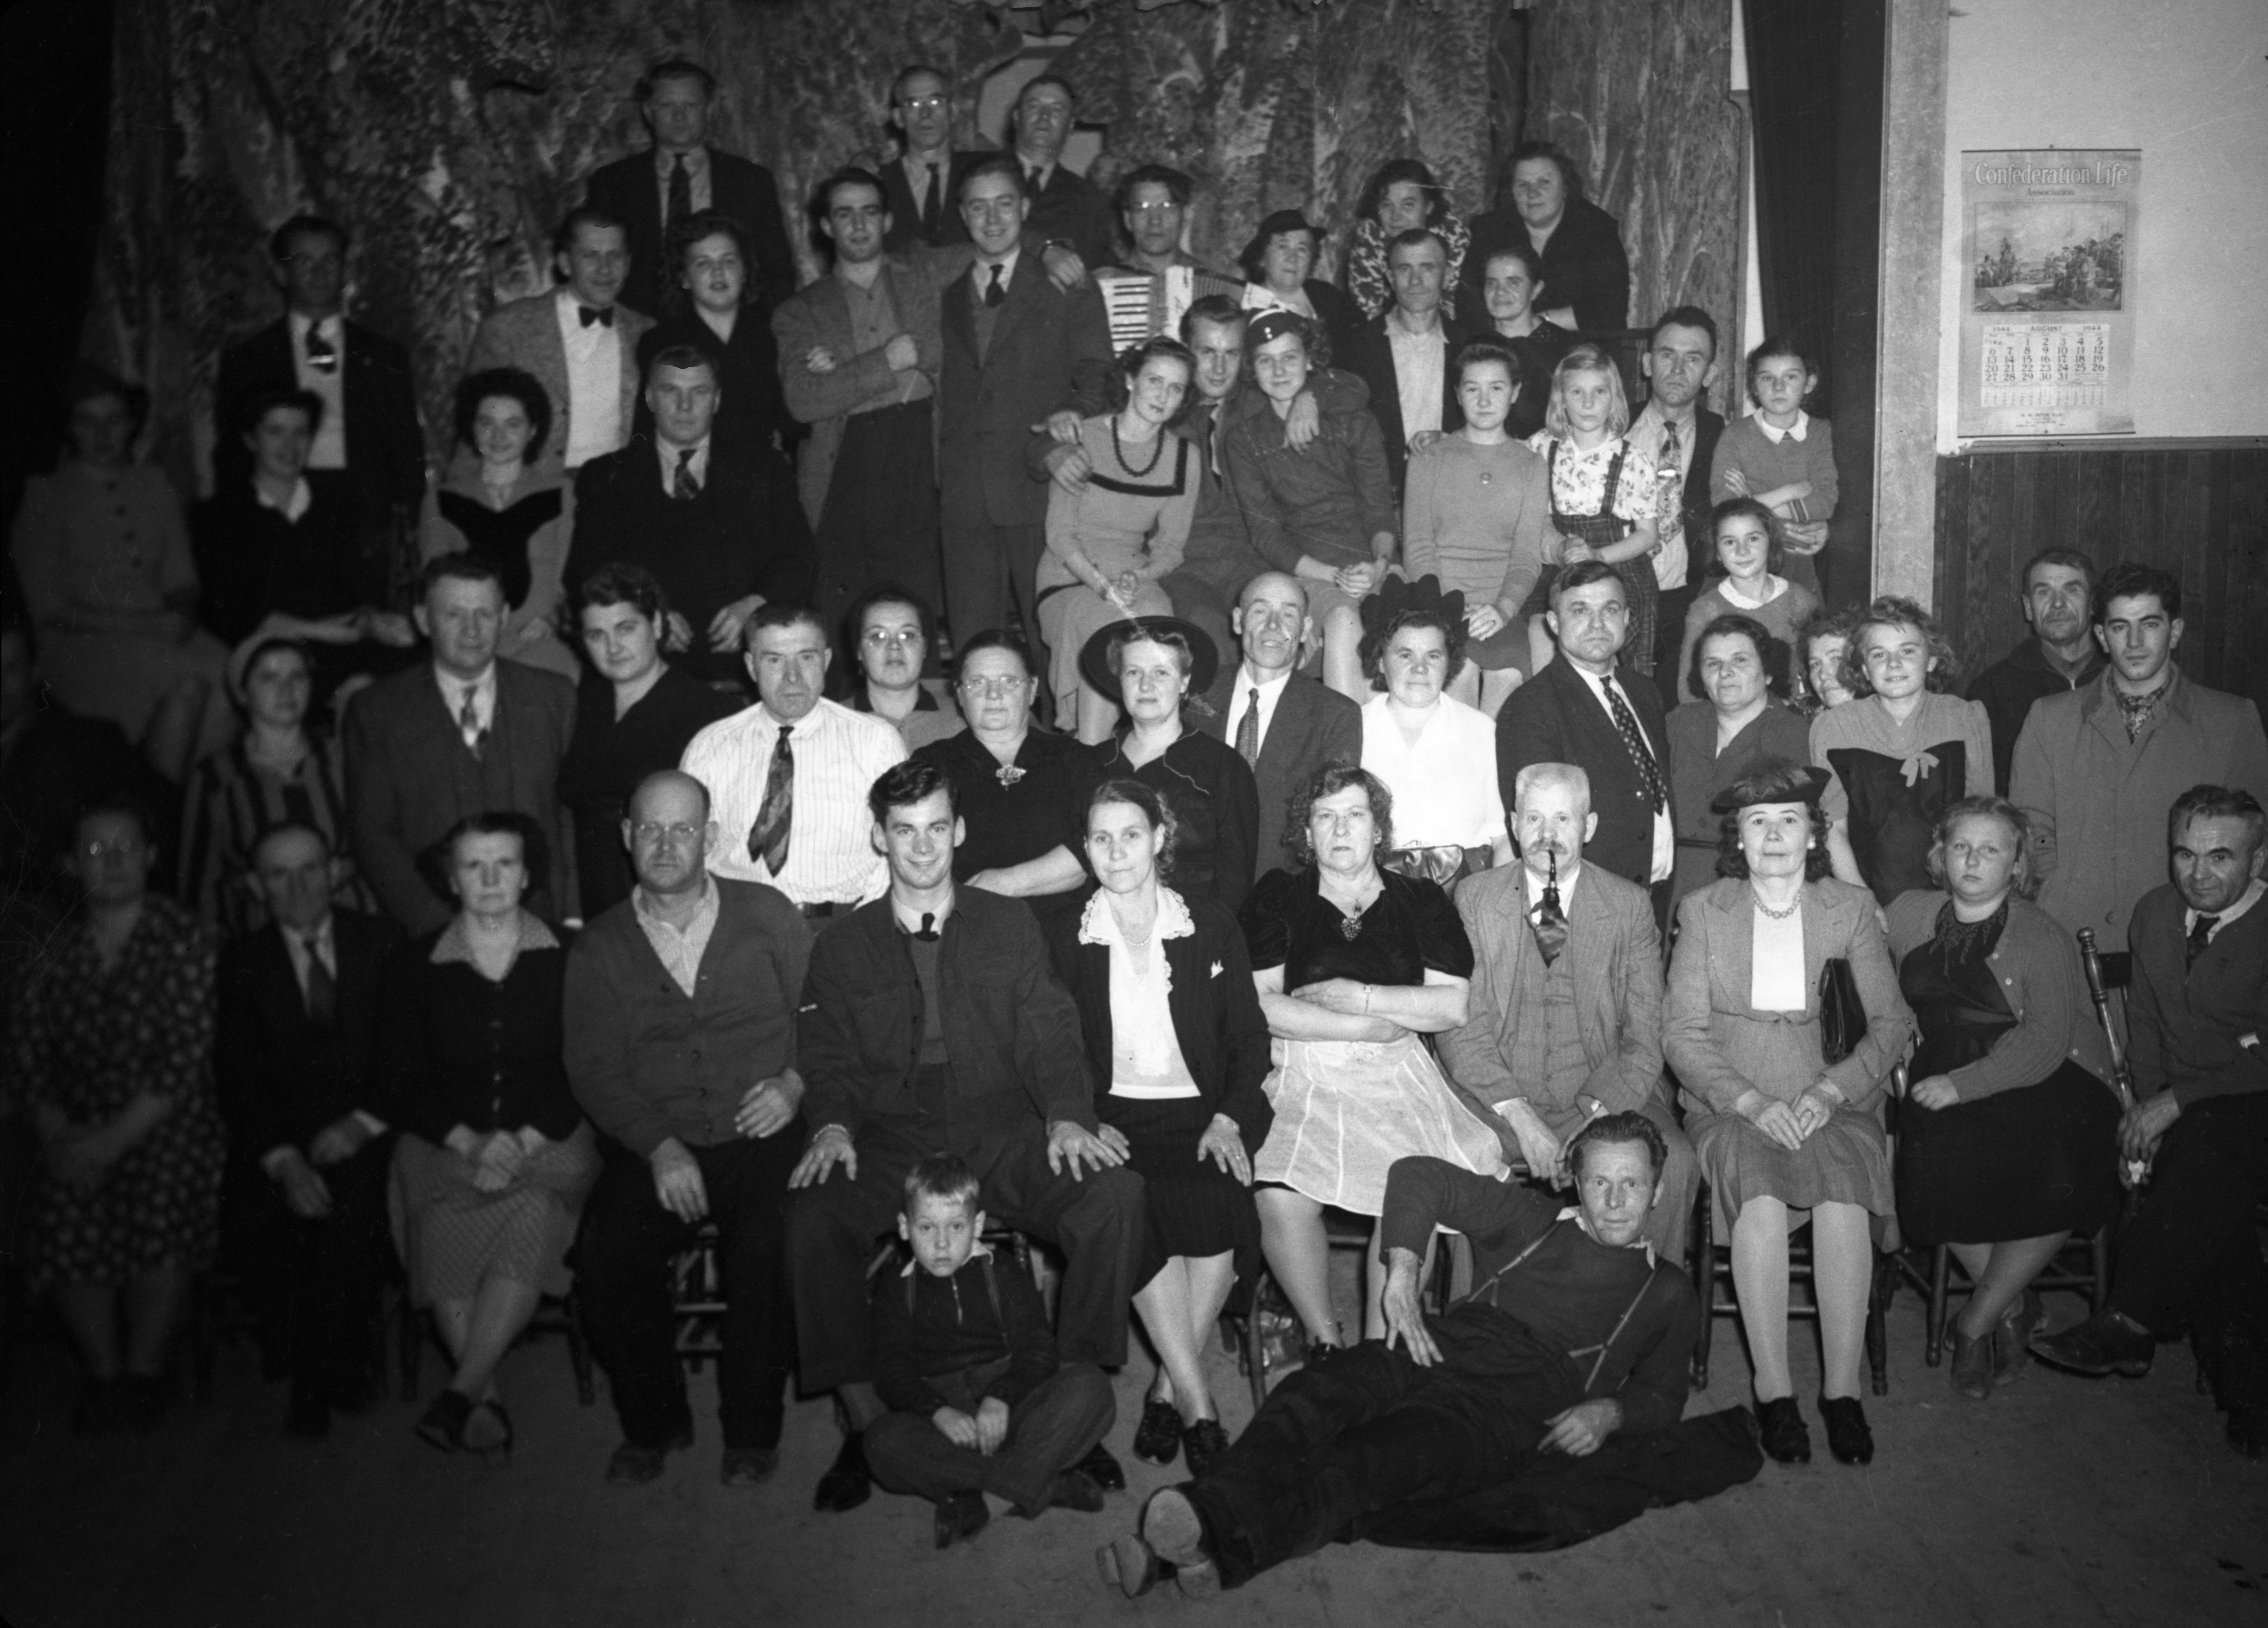 Black-and-white photograph of about 50 people: 23 women, 24 men and a few children. One person is holding an accordion.